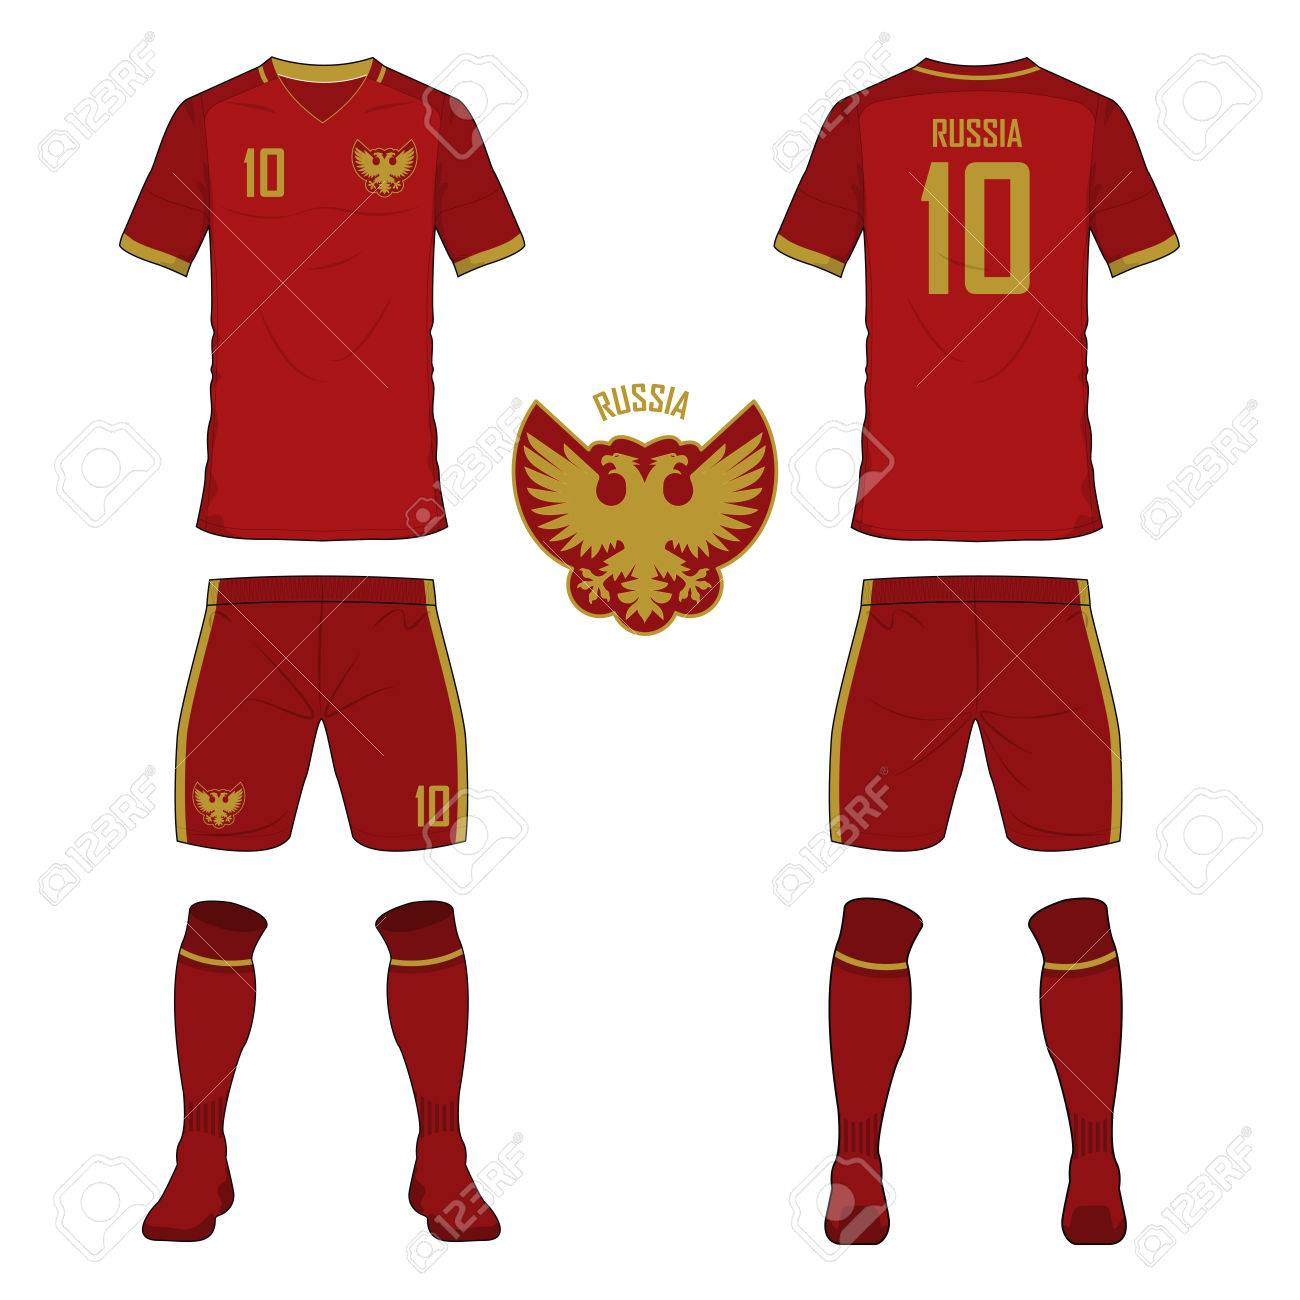 new product ec3e2 fc8c3 Set of soccer jersey or football kit template for Russia national..